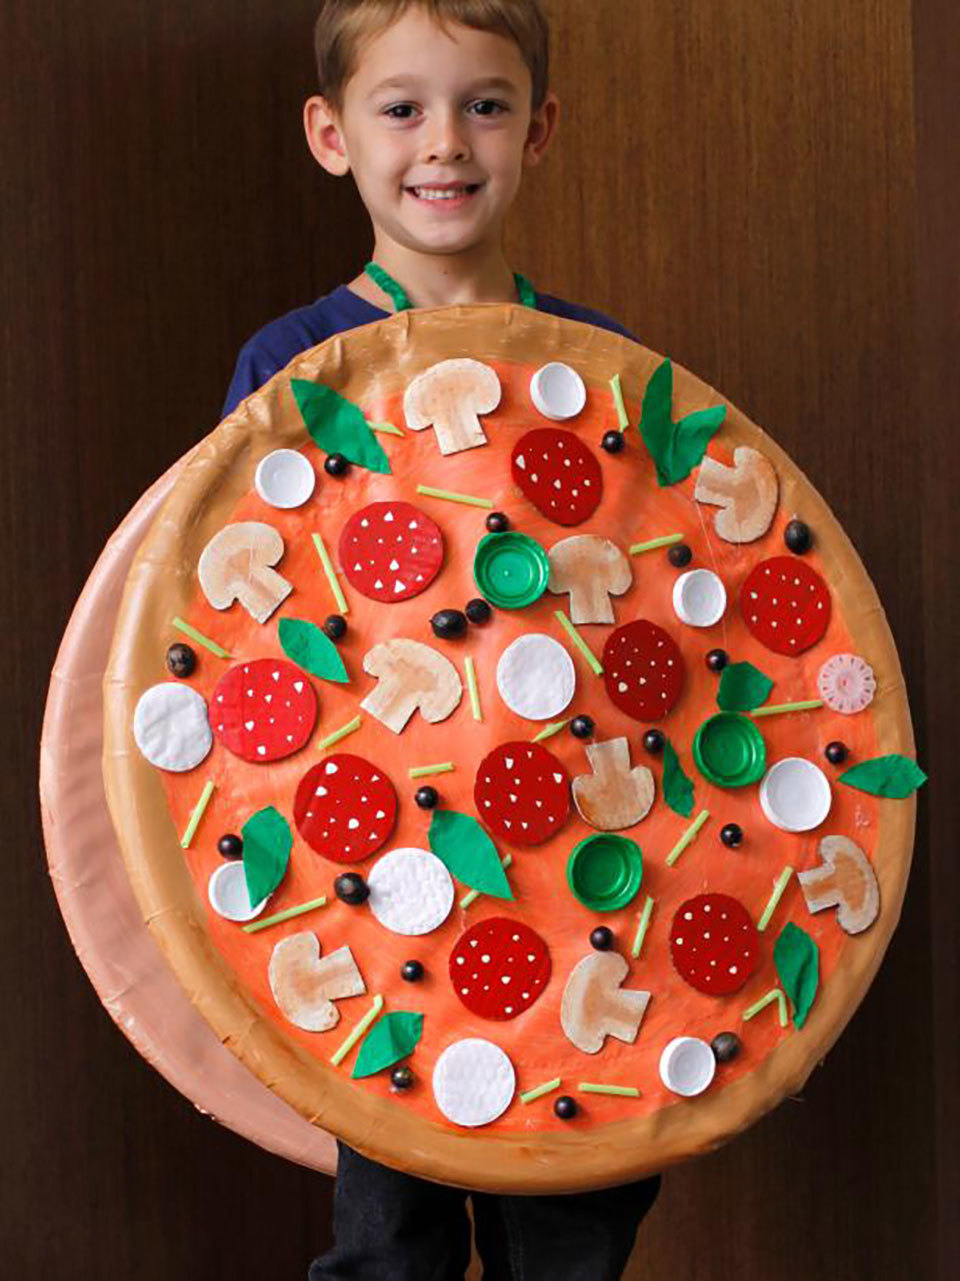 child with whole pizza costume on